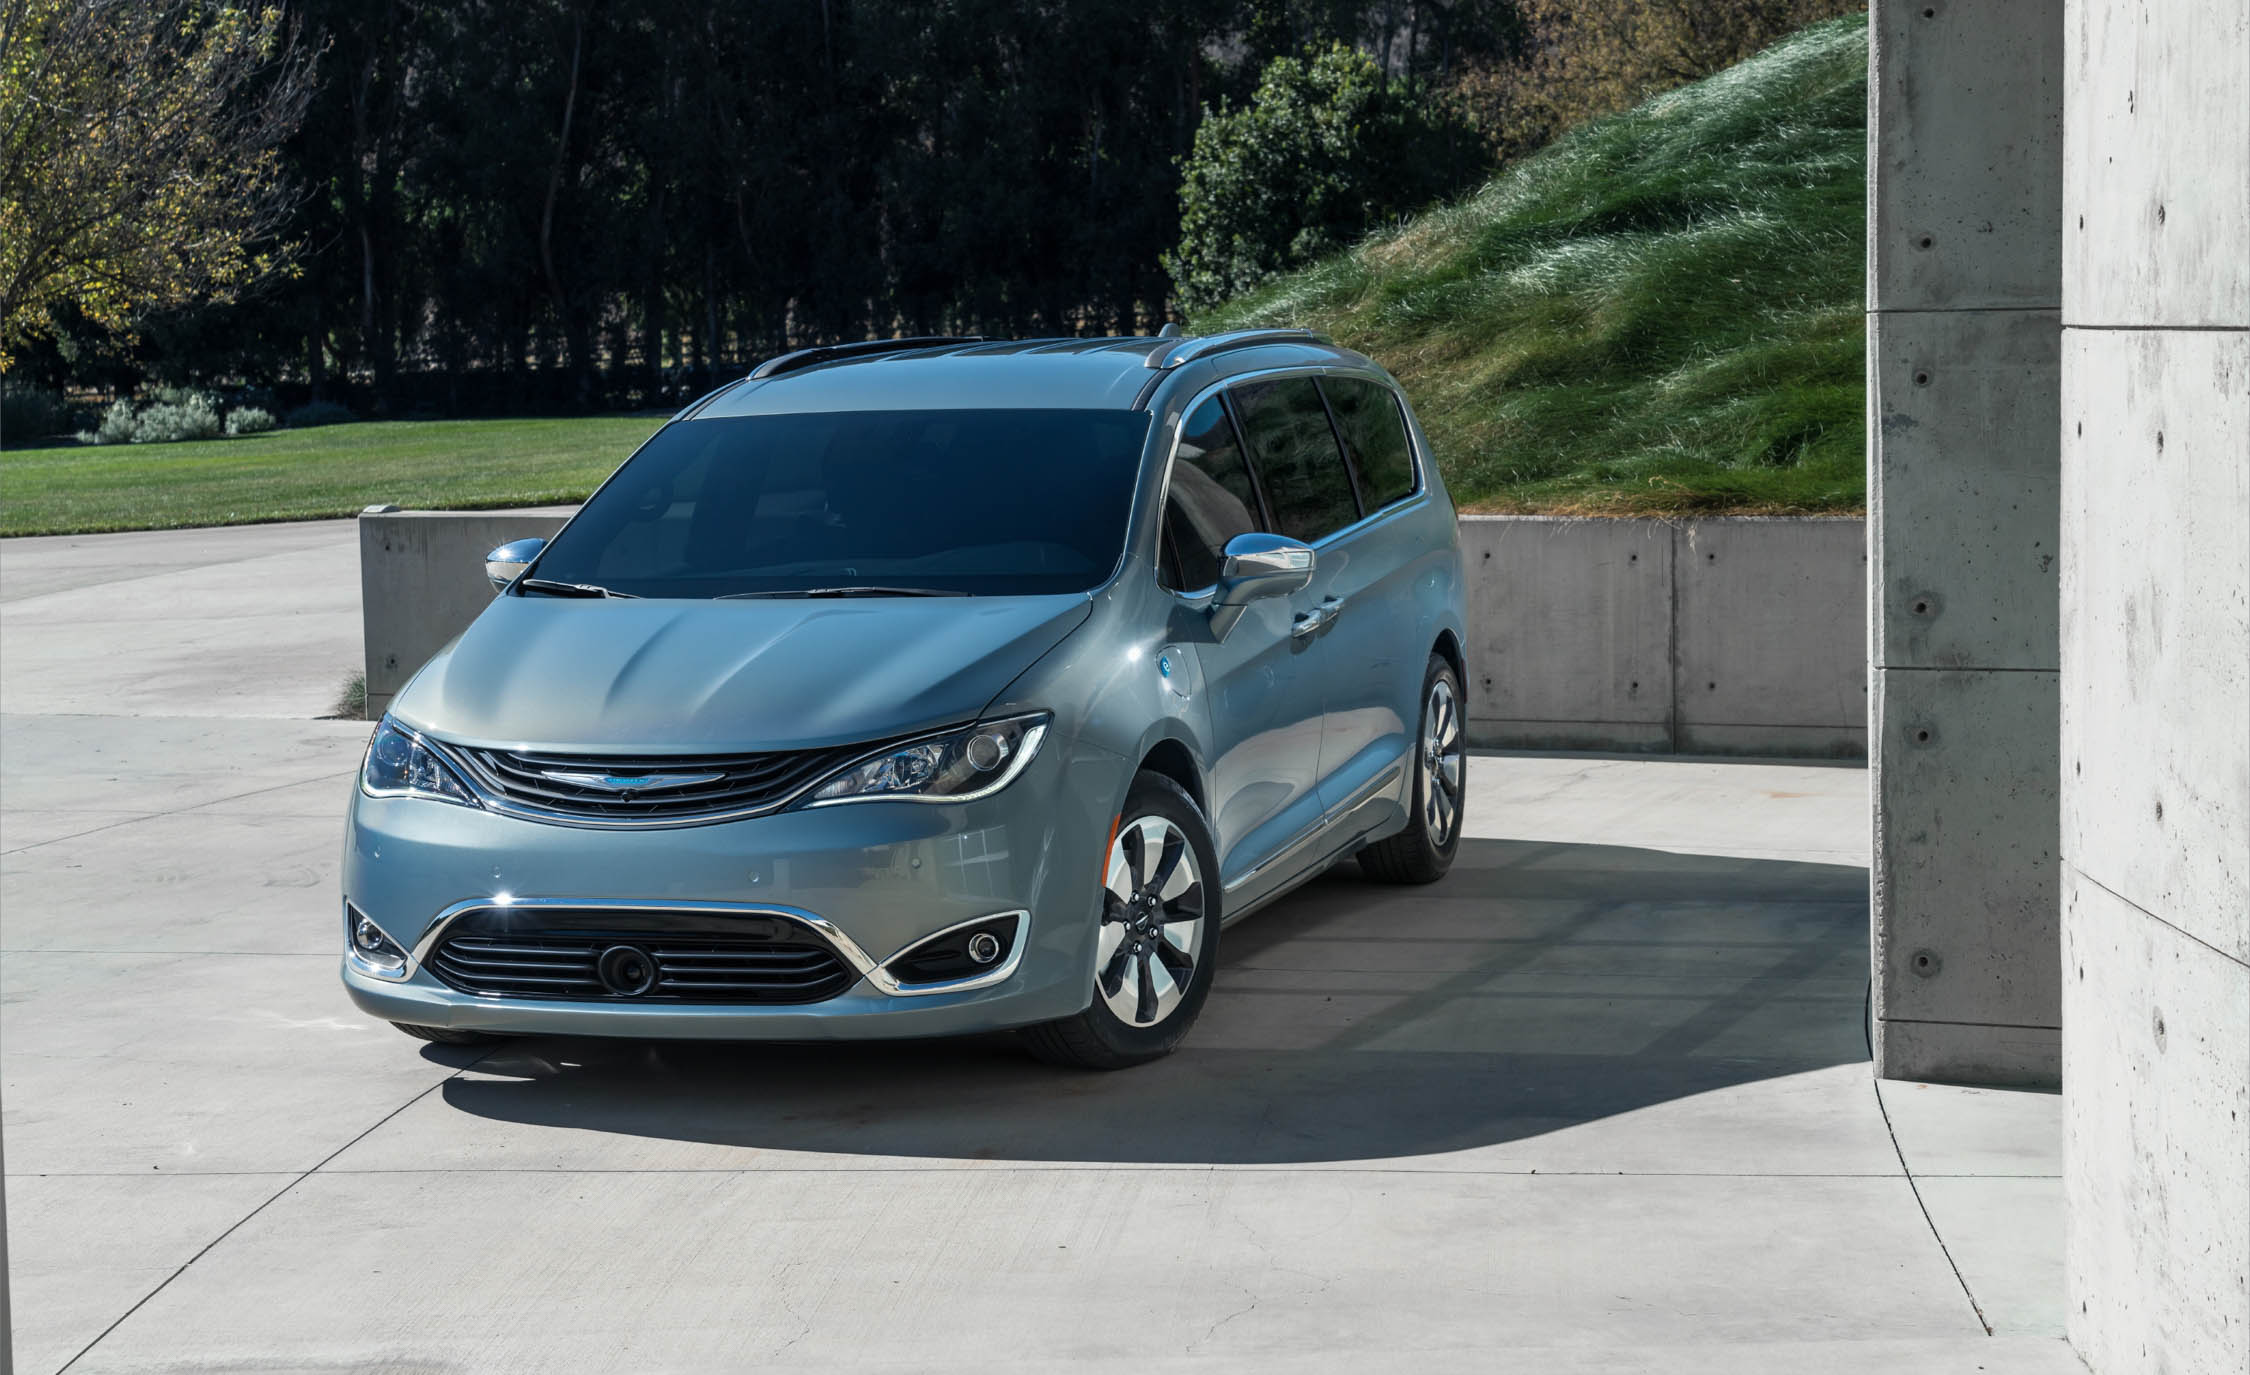 2017 Chrysler Pacifica Hybrid (Photo 7 of 10)